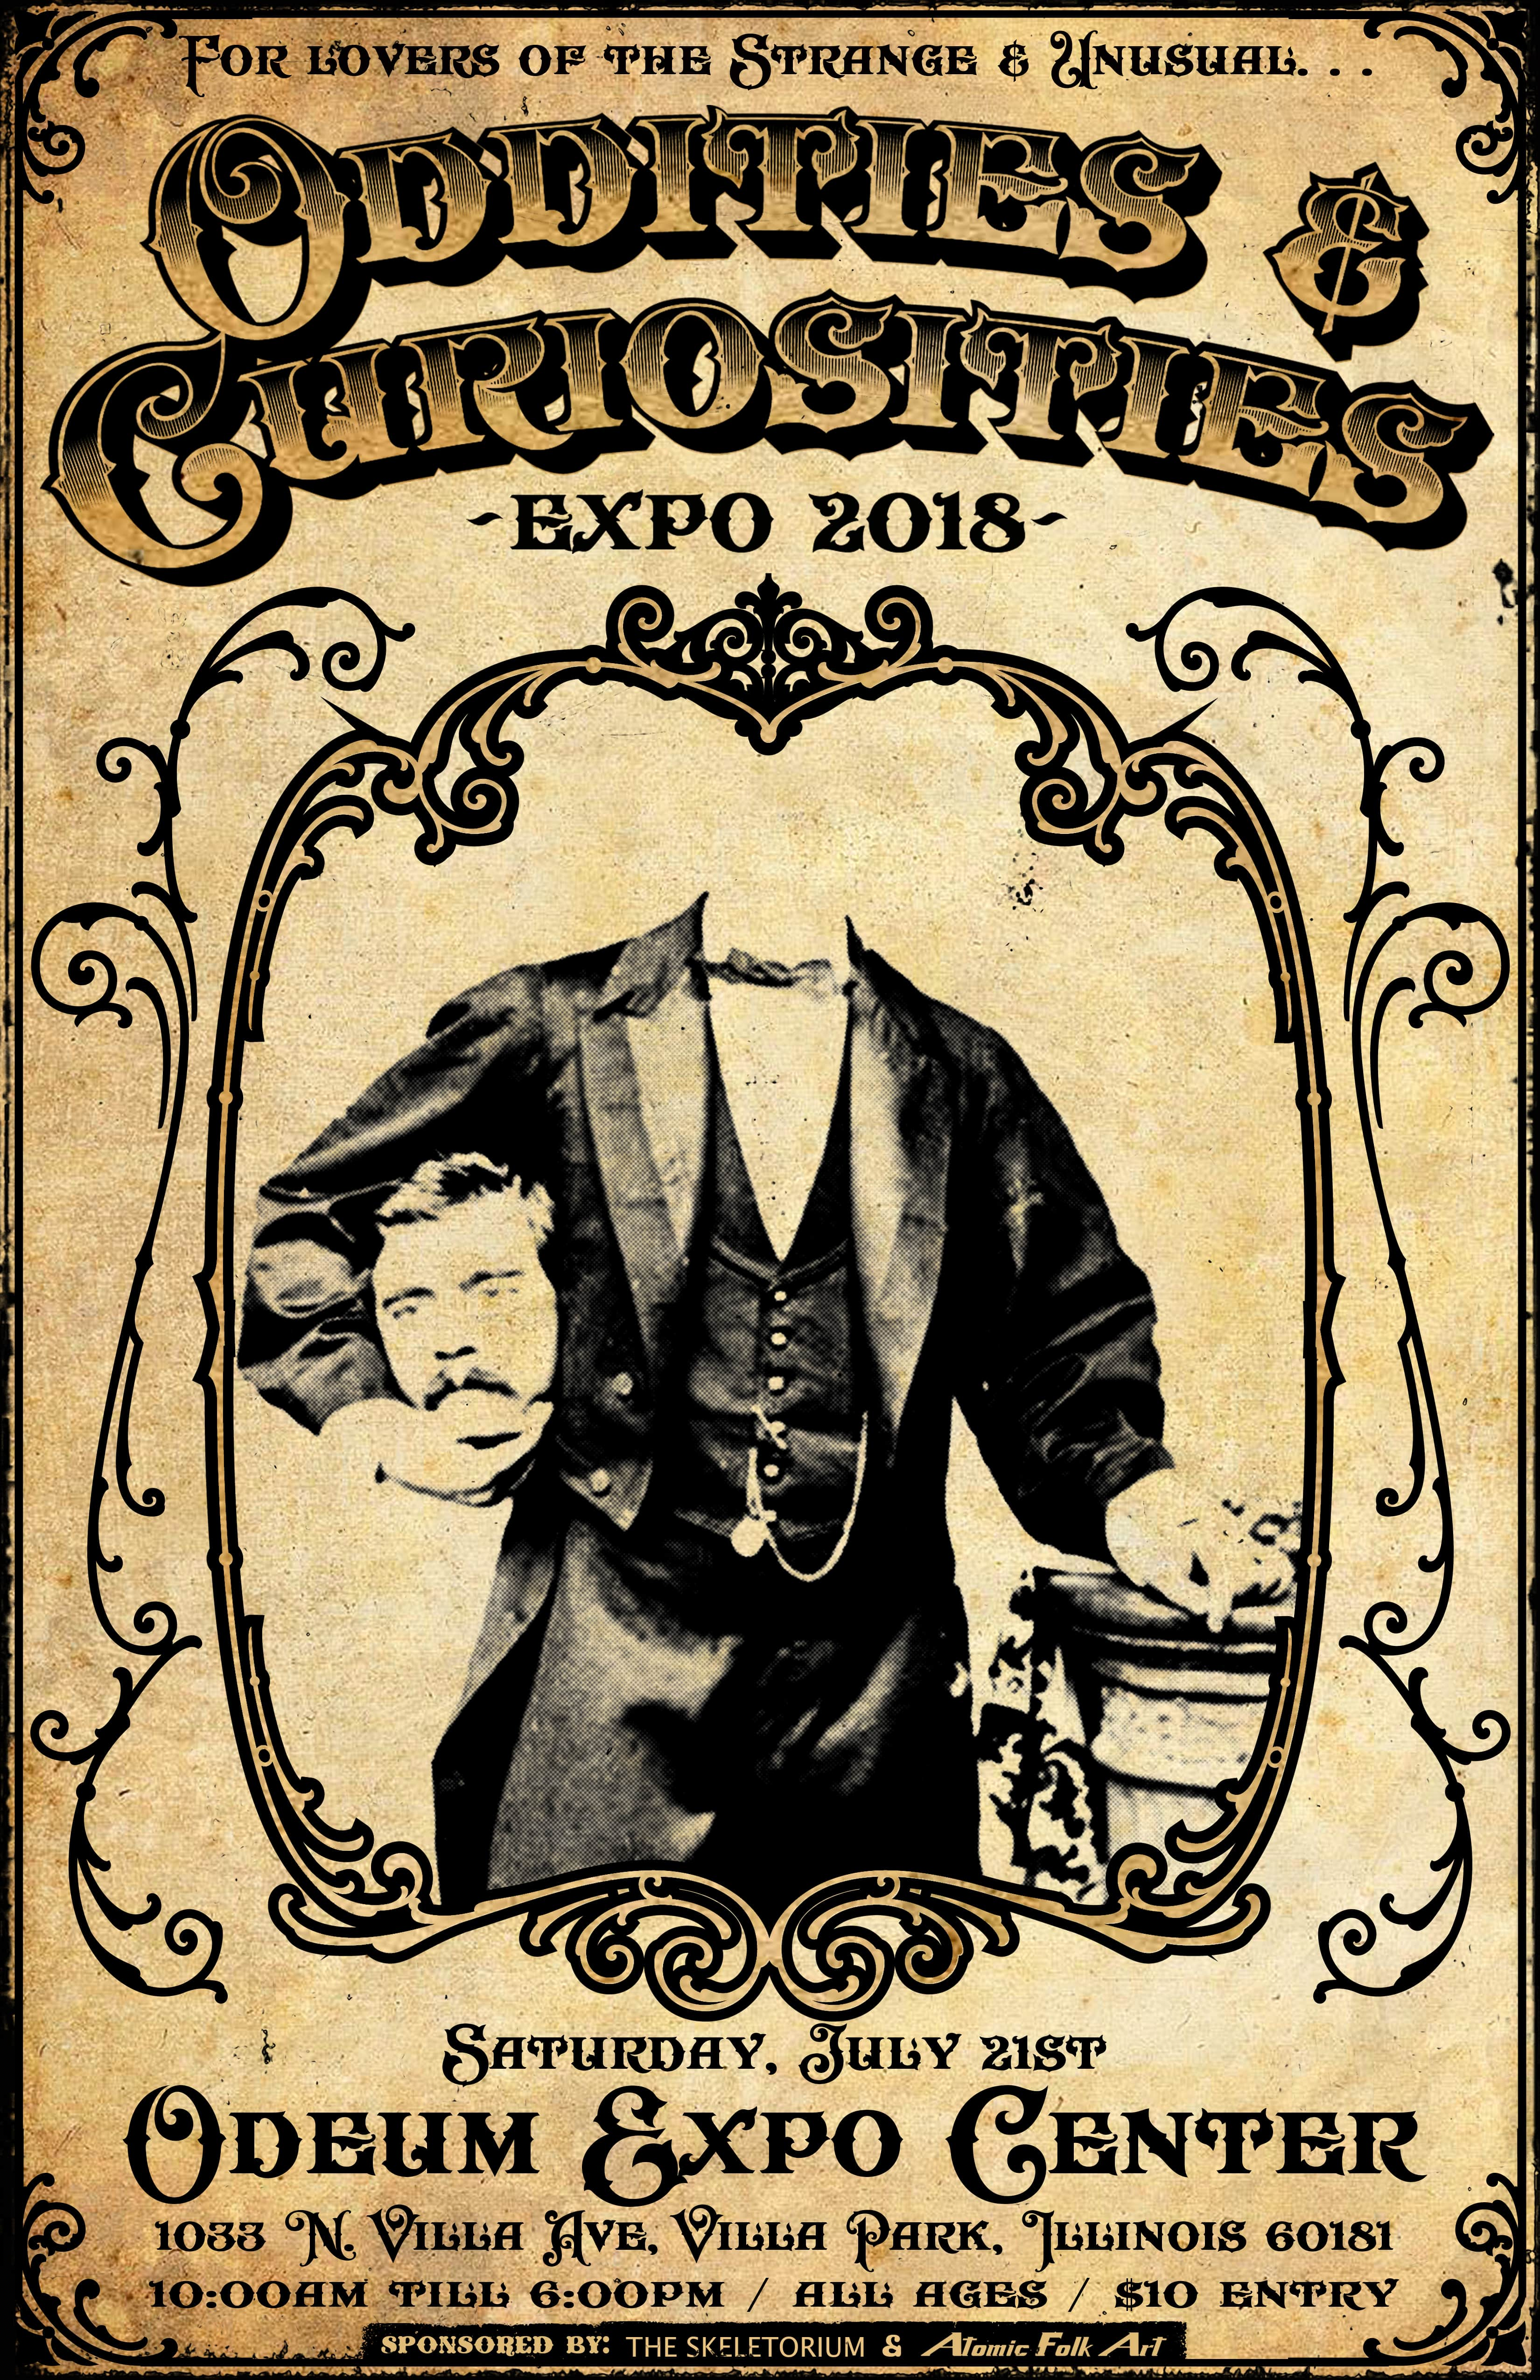 Oddities and Curiosities Event Bill. Expo 2018, Odeum Expo Center, Villa Park, IL